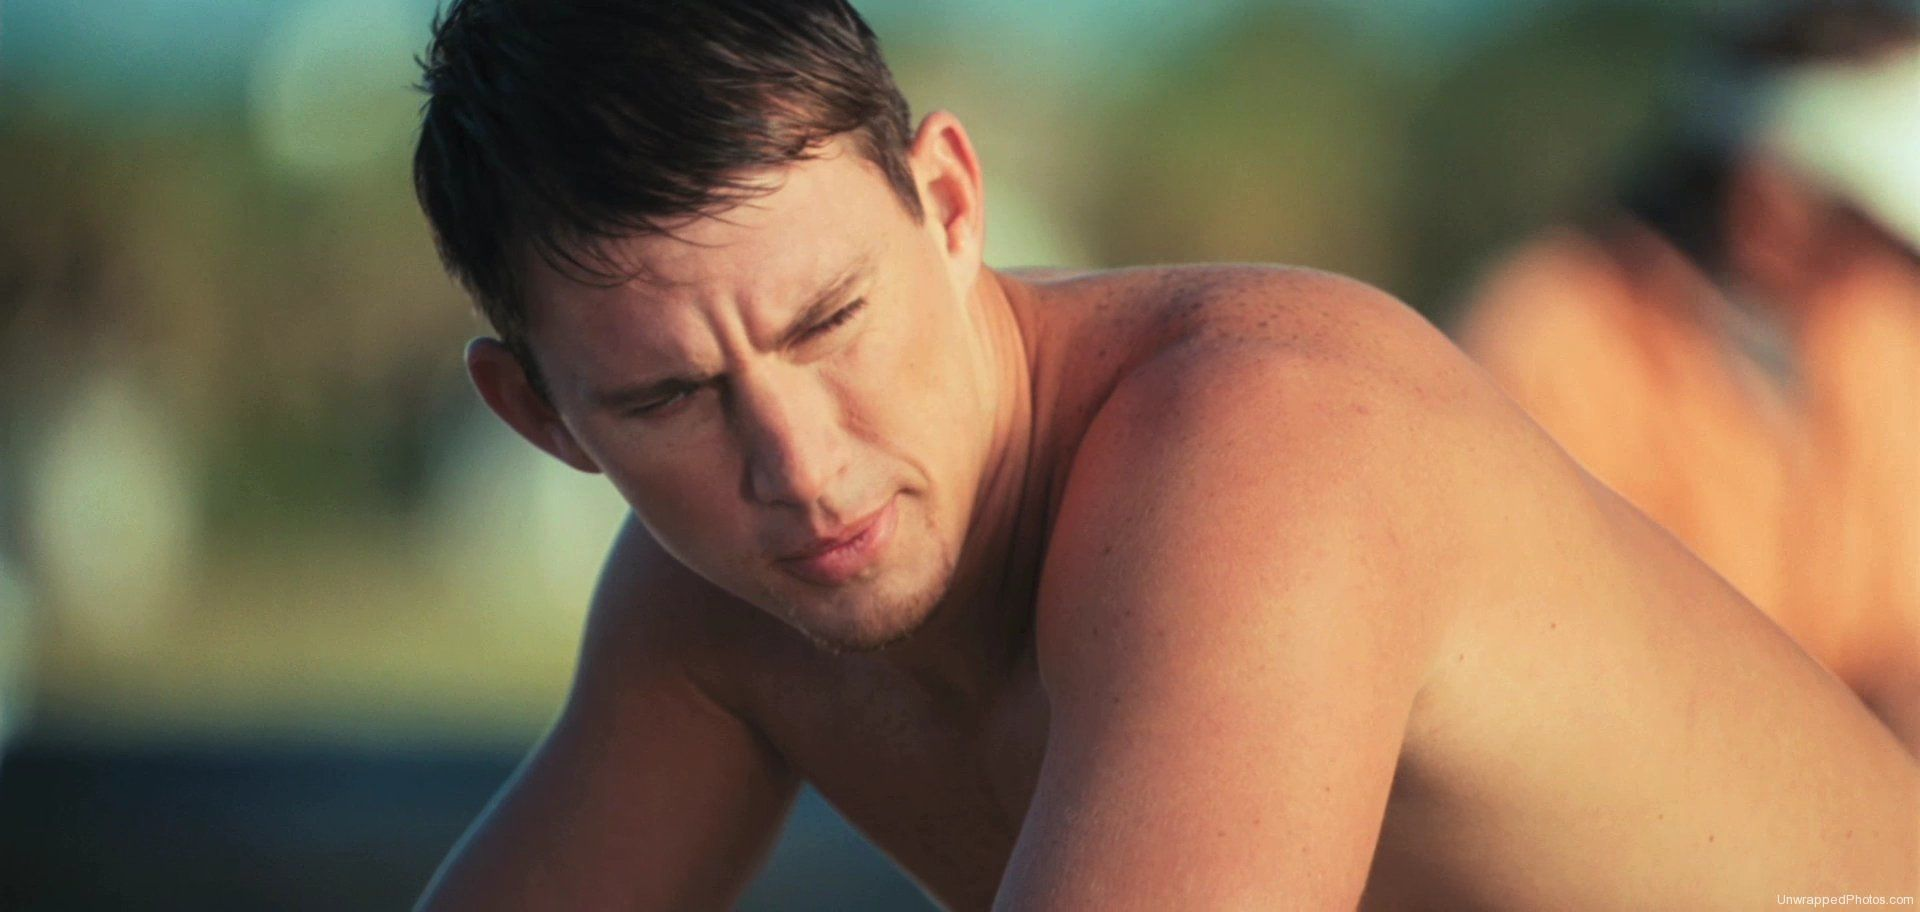 Image detail for -Trailer Screen Caps of Channing Tatum in